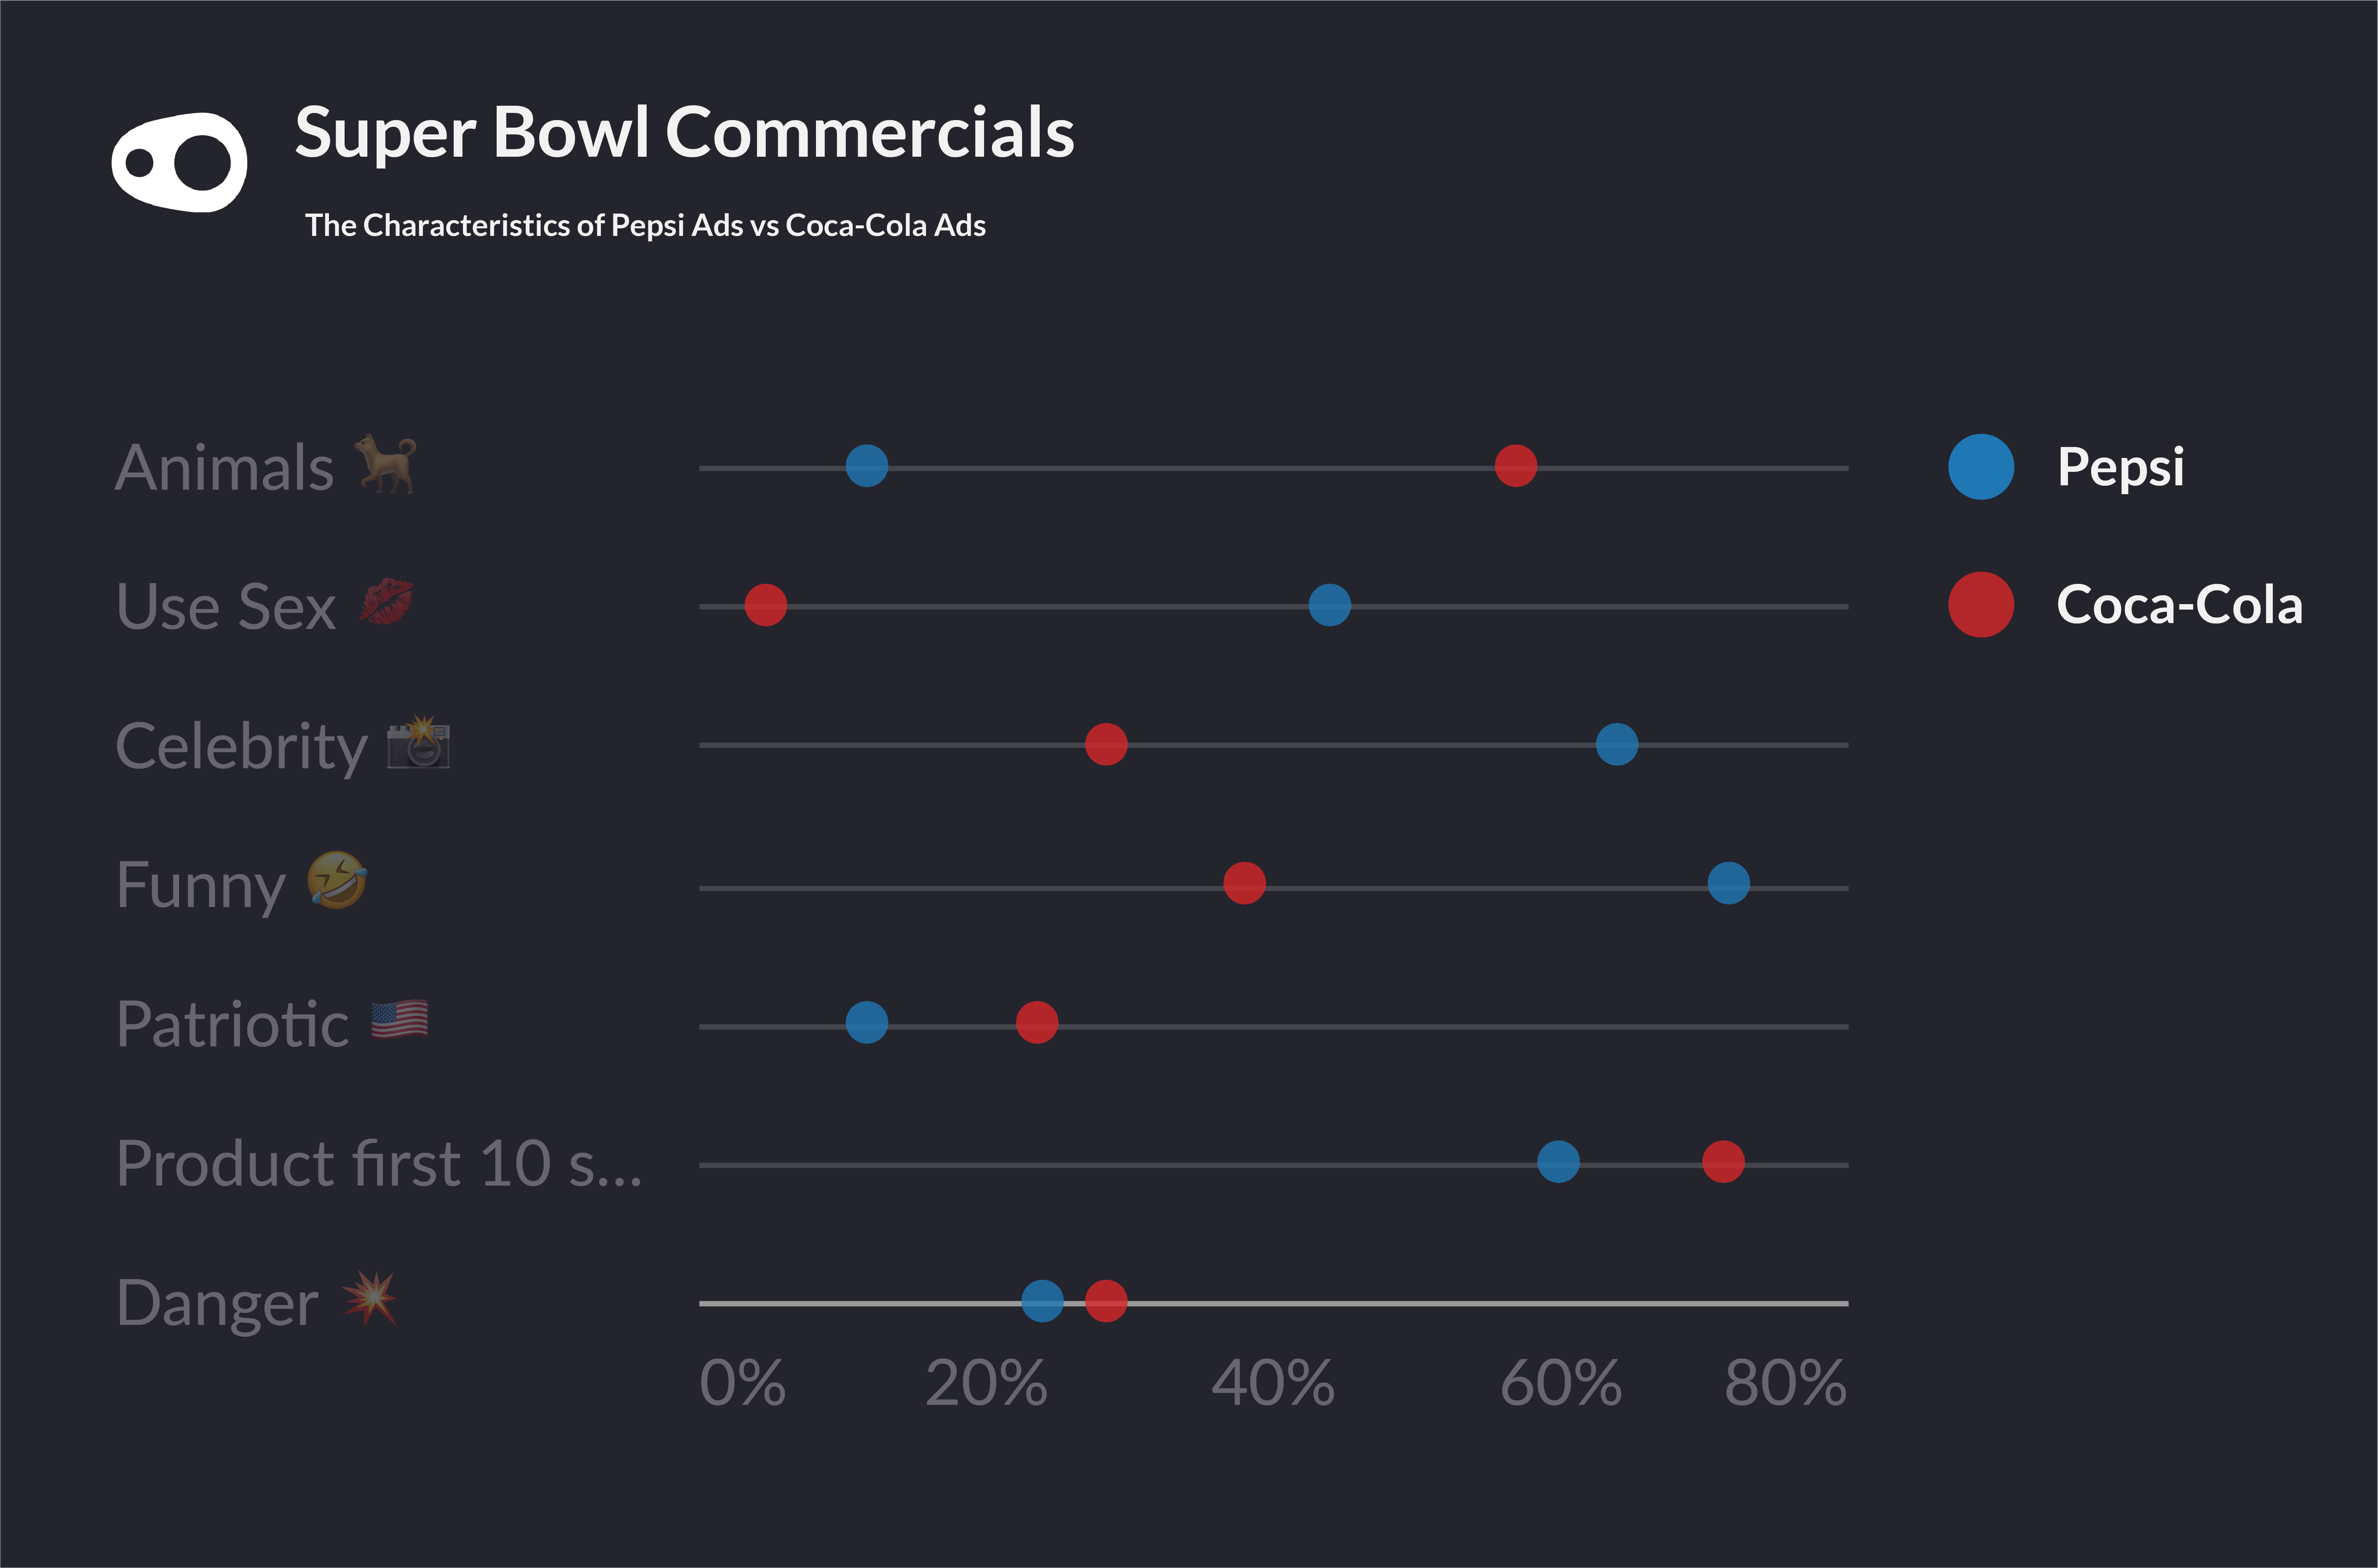 A chart showing the difference between coca-cola and pepsi's approach to superbowl commercials over the past 20 years.